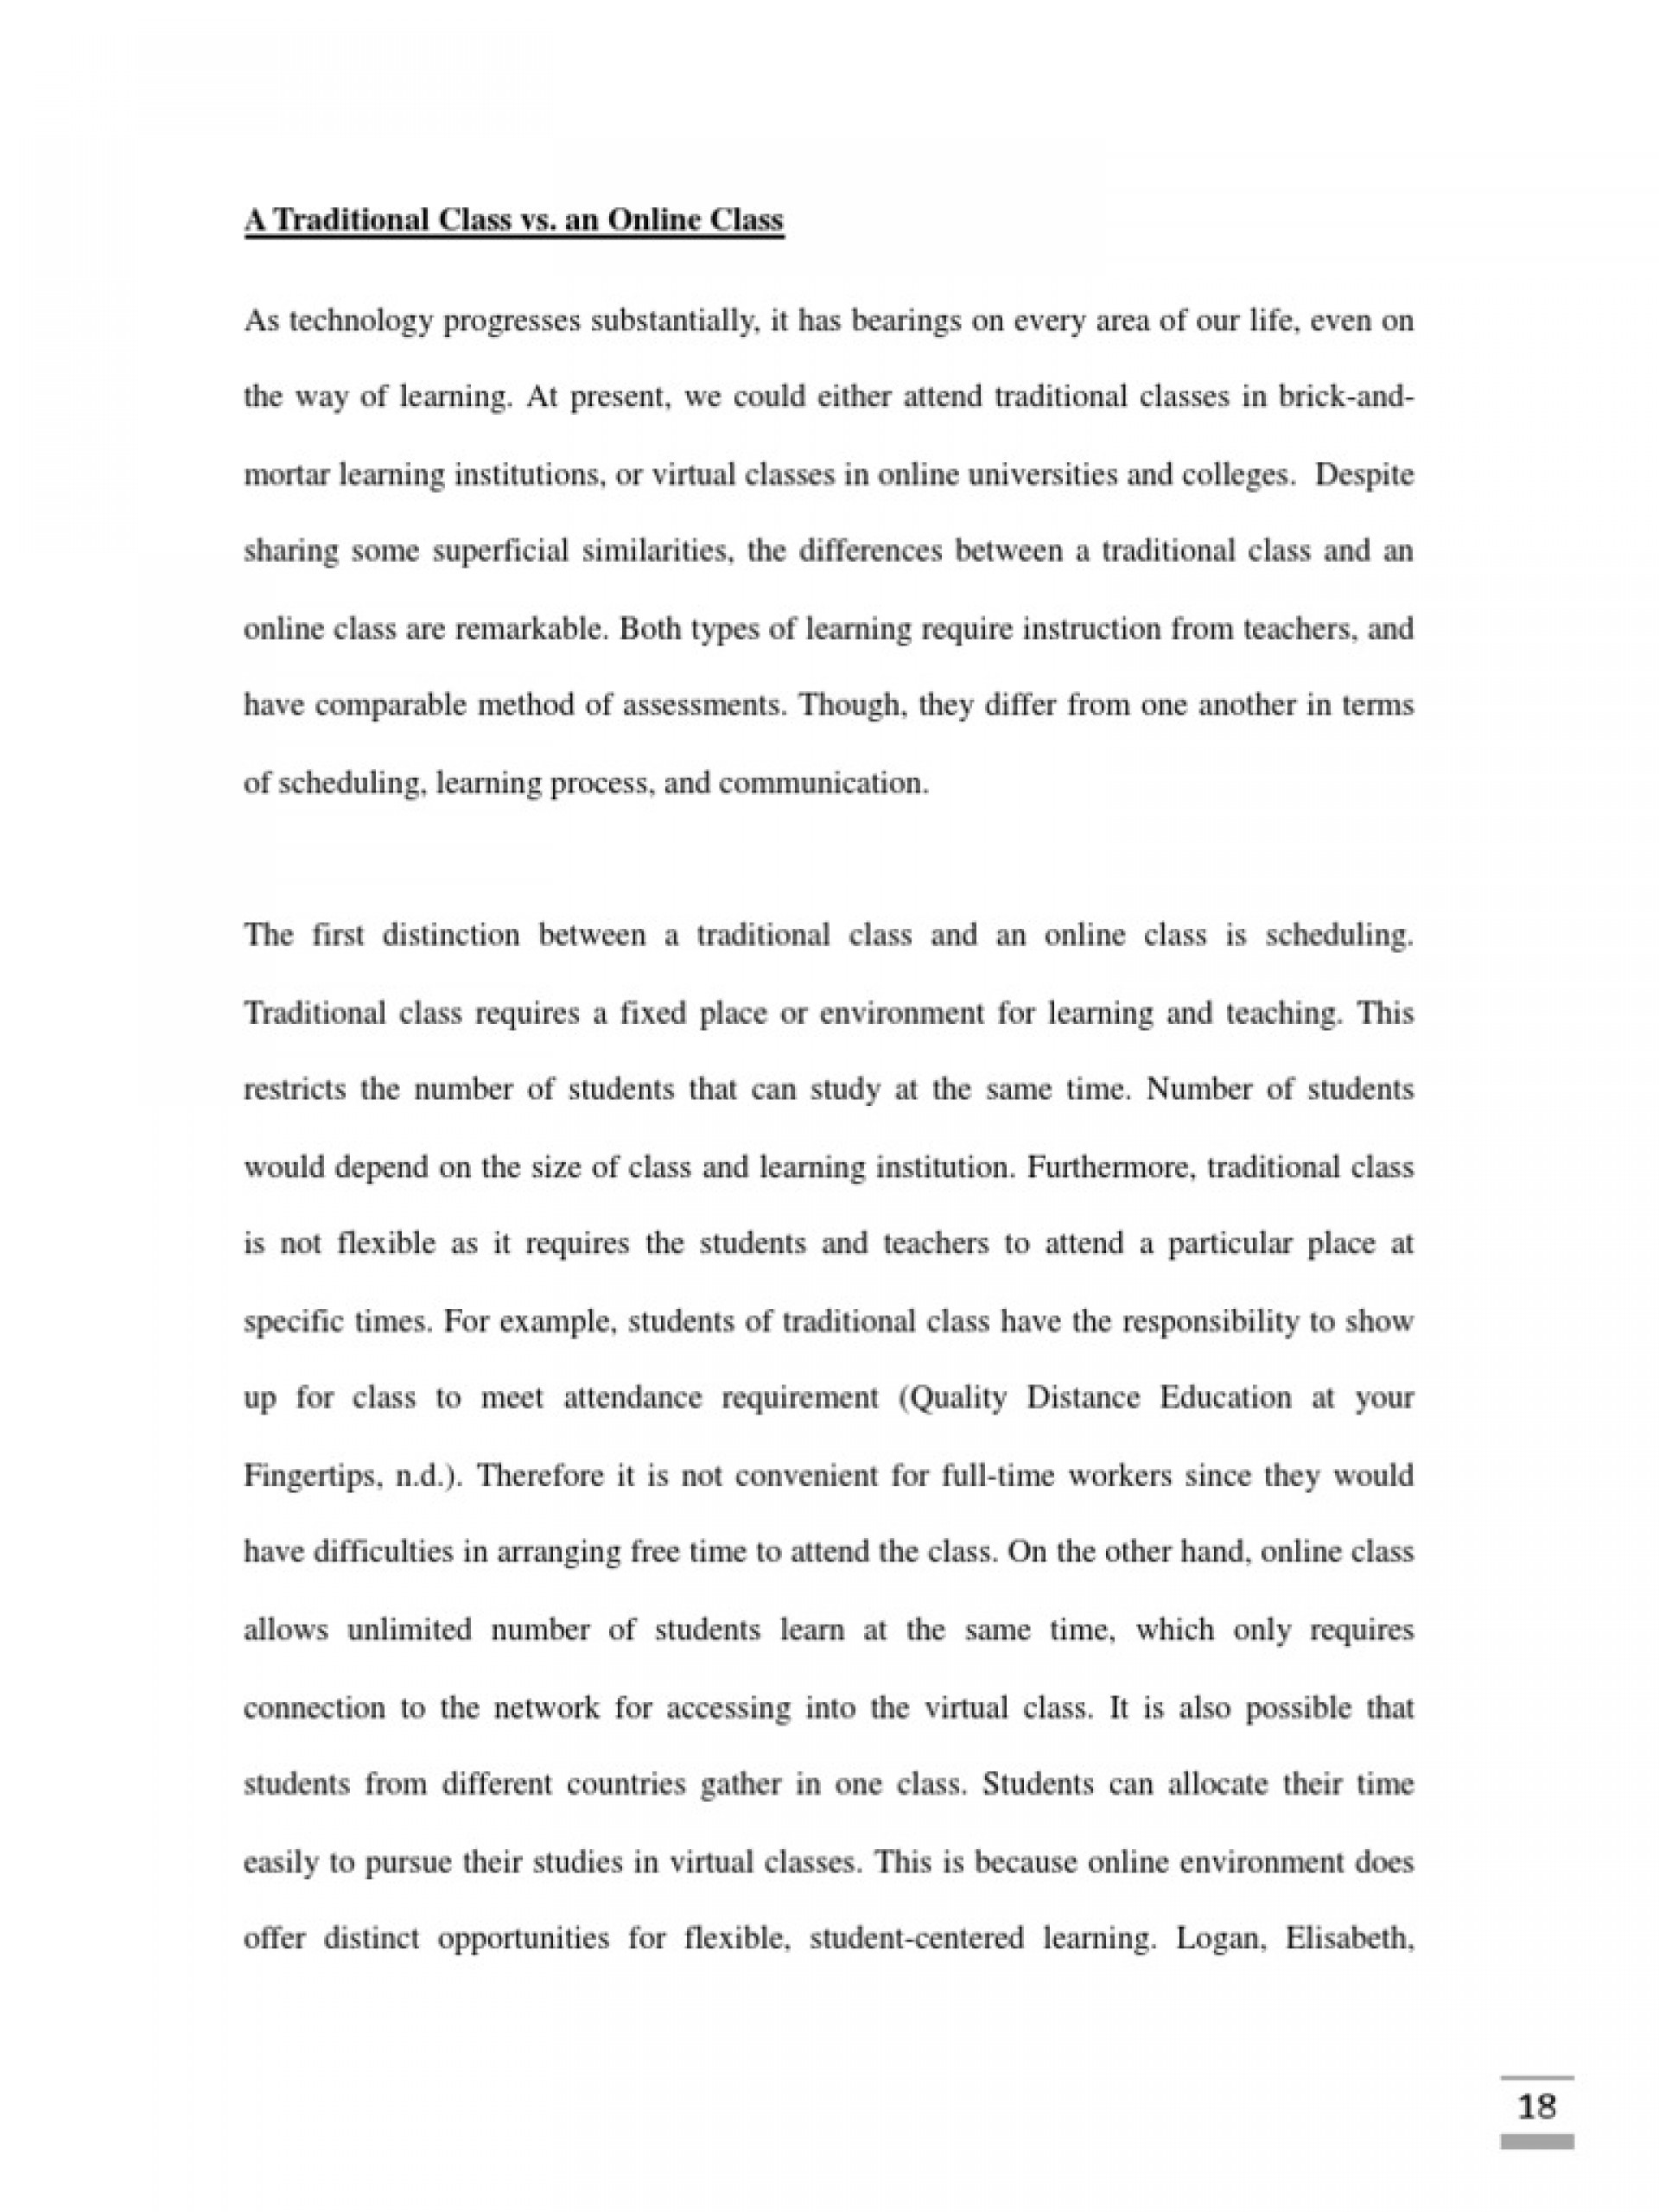 017 4107641886 Marriage Versus Living Together Comparison Contrast Essay Example Awful And Topics List Thesis Statement Compare Means 1920